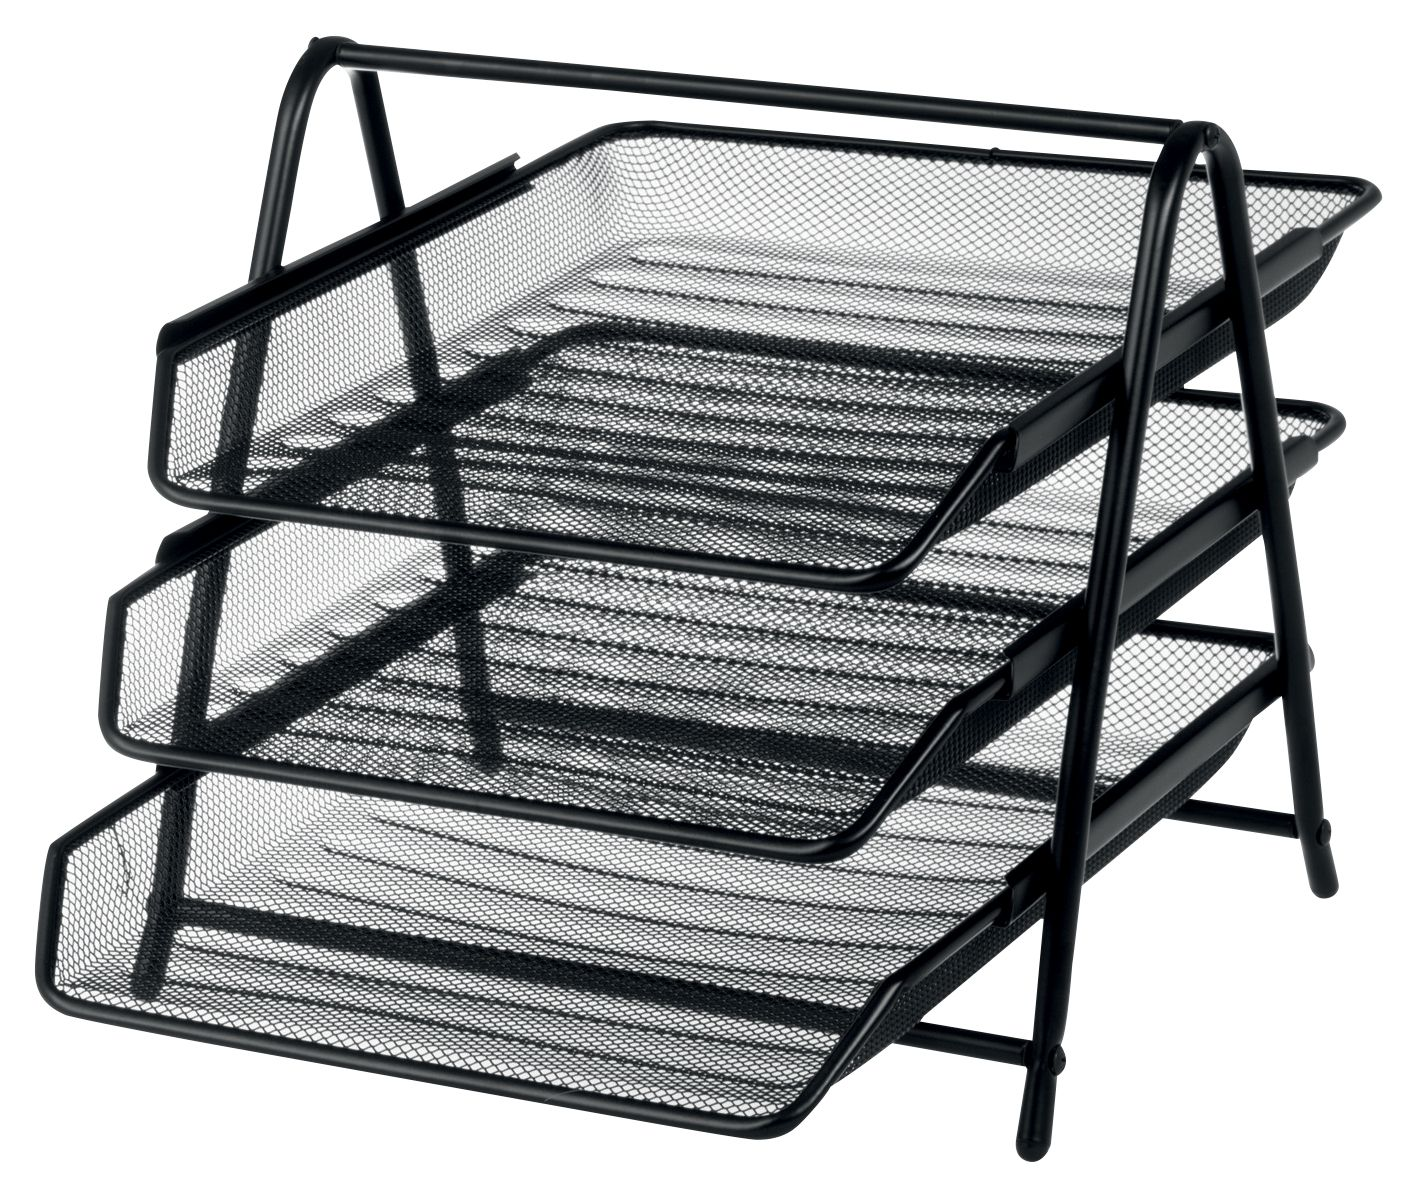 office depot executive mesh 3 tier letter tray black ebay With 3 tier letter tray